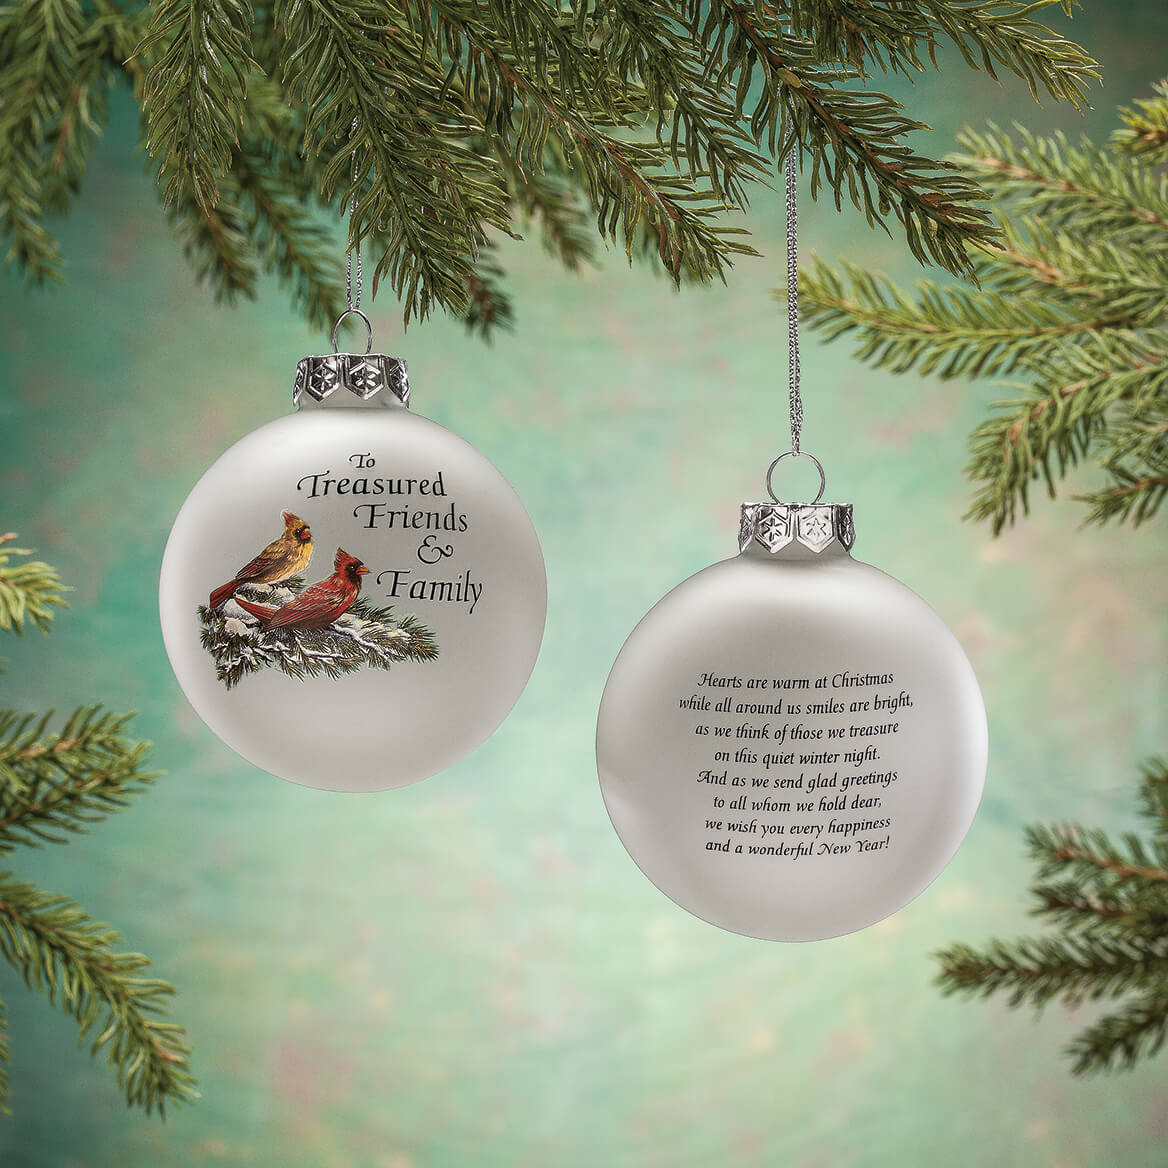 Treasured Friends Glass Ball Ornament by Holiday Peak™-367957